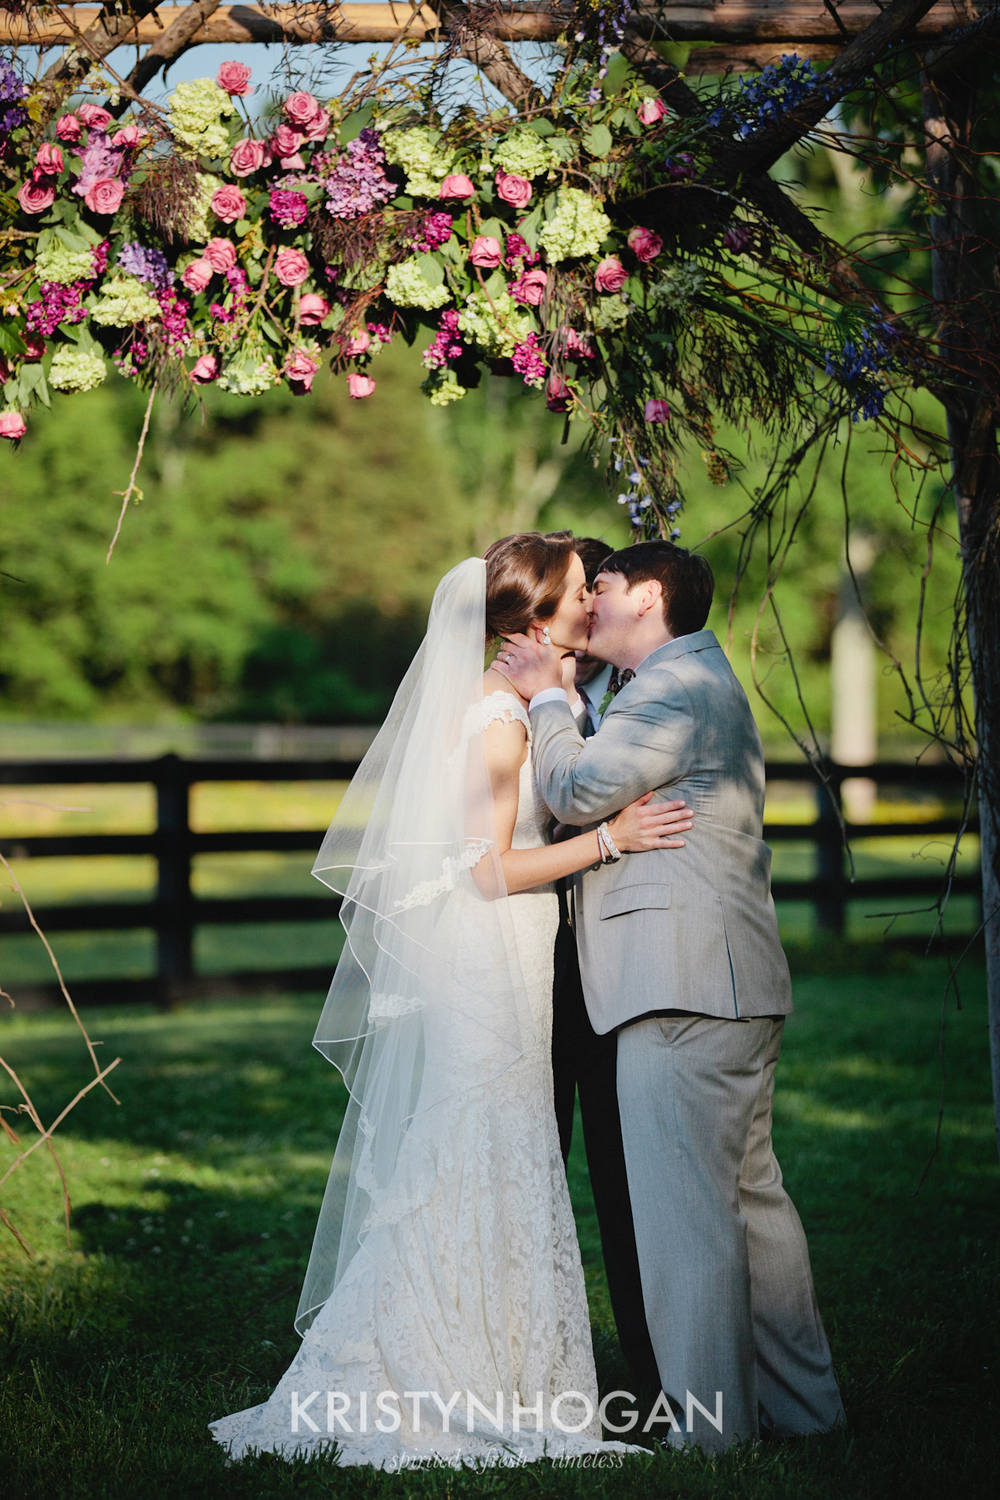 Nashville_Wedding_Photographer_Kristyn_Hogan_Samples_309.jpg